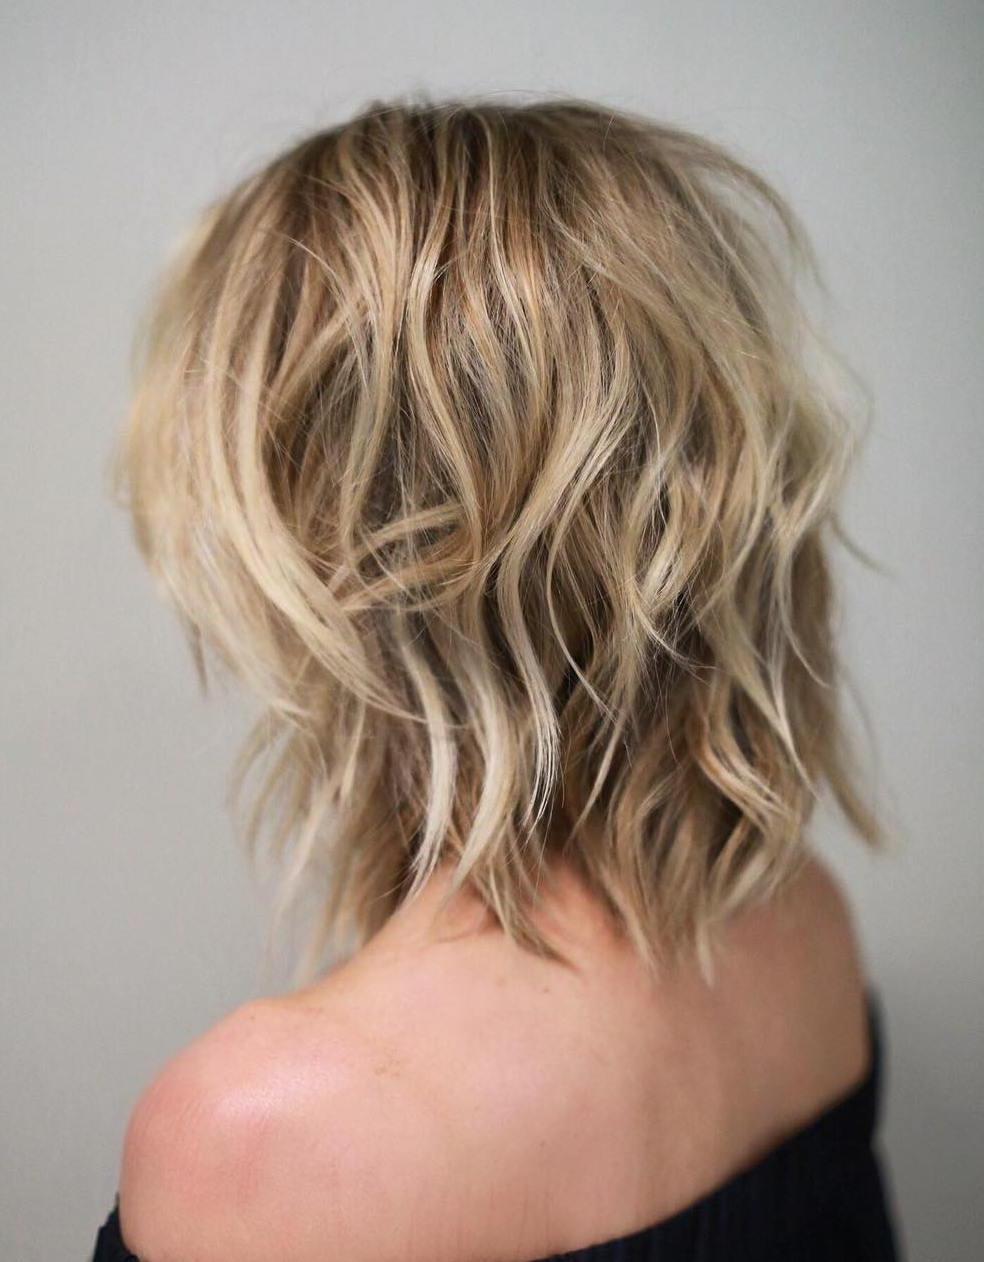 Shag Haircuts And Hairstyles In 2018 — Therighthairstyles With Wavy Sassy Bob Hairstyles (View 21 of 25)